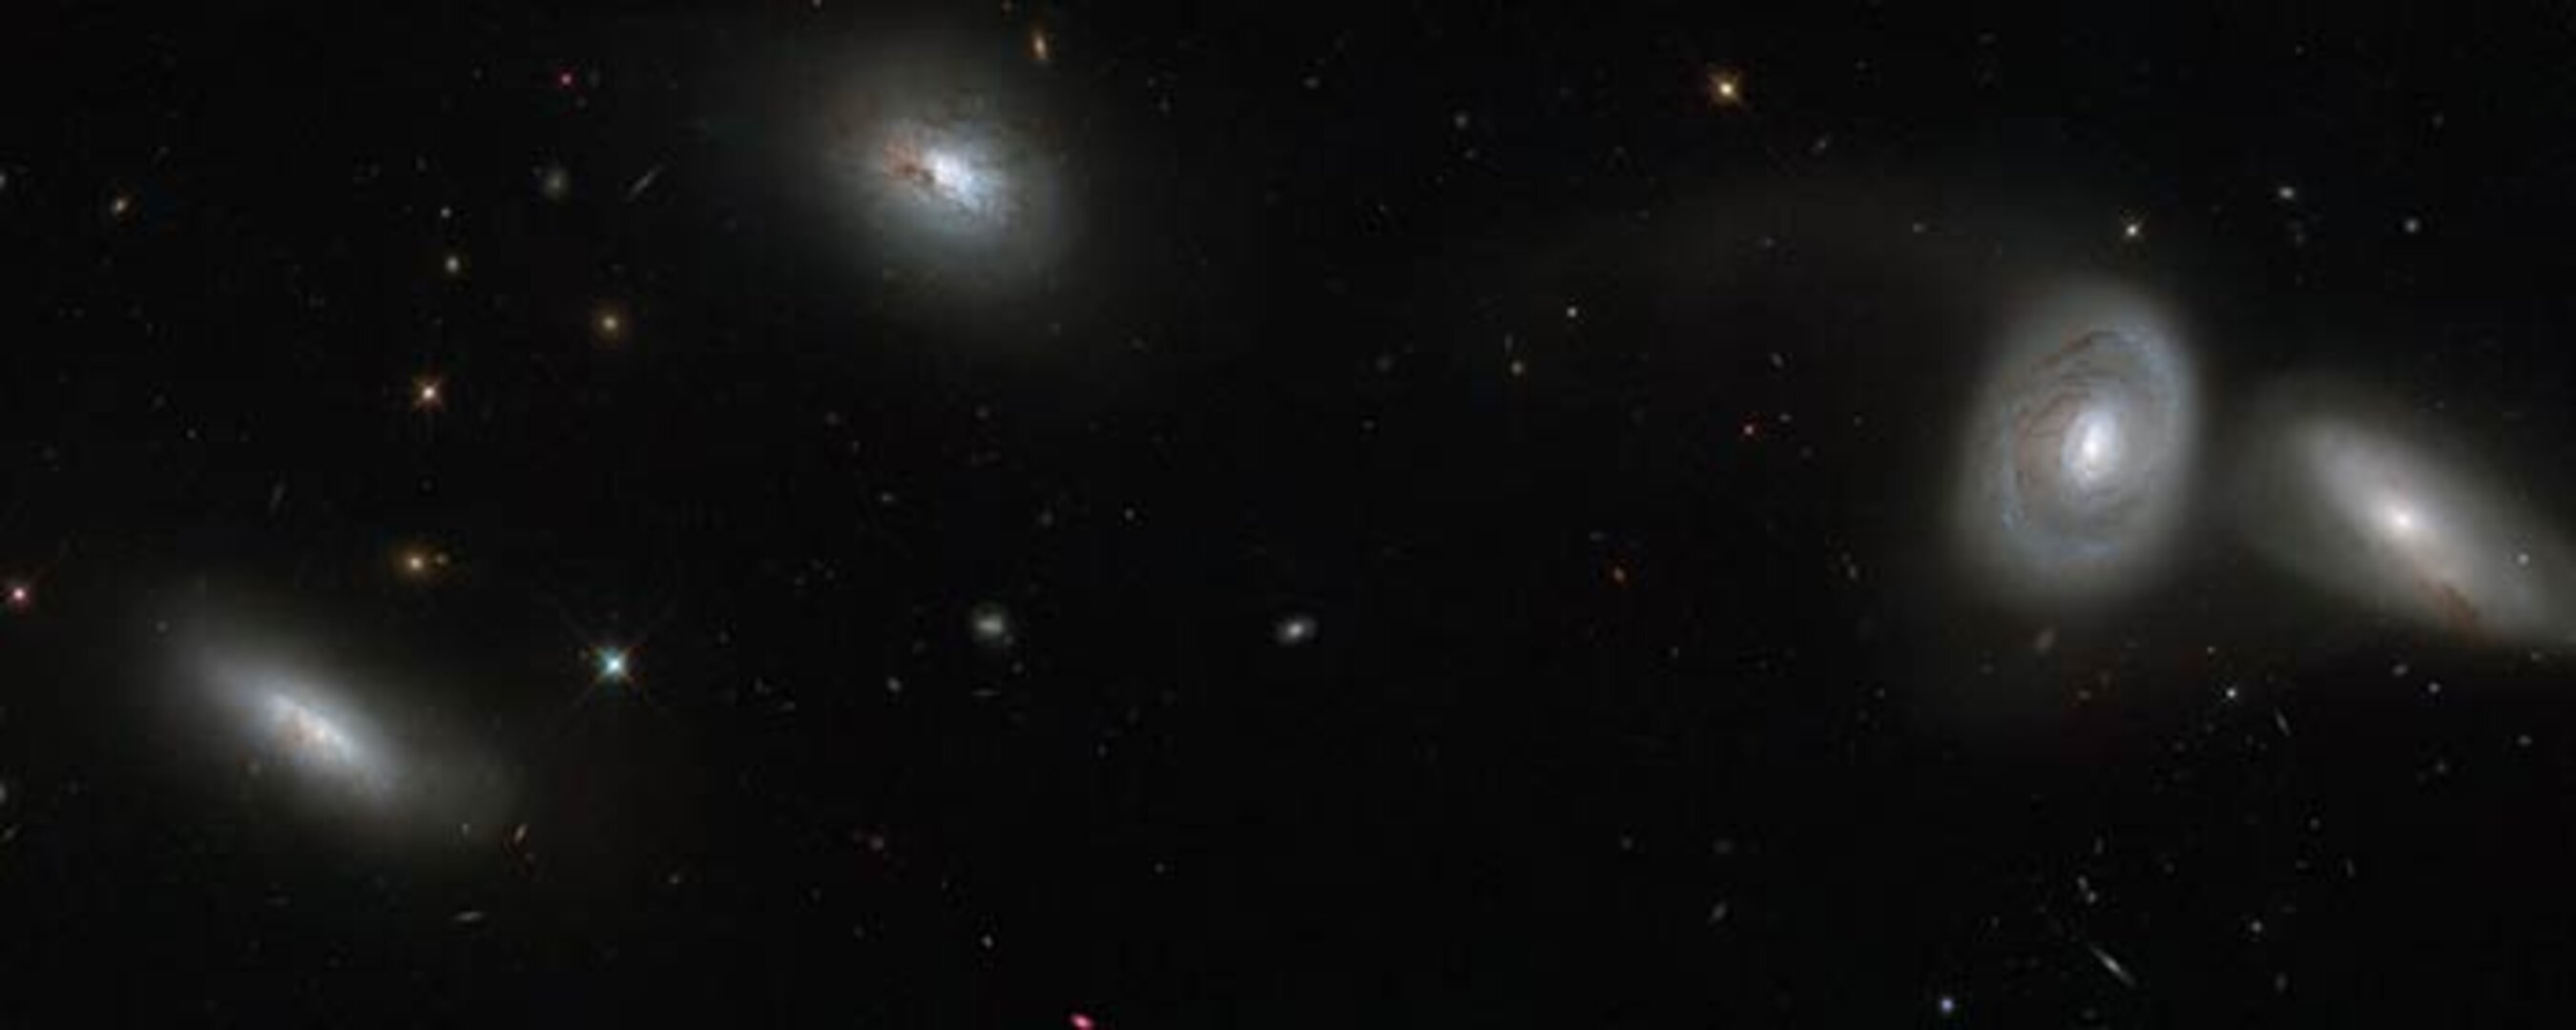 Hubble views a bizarre cosmic quartet